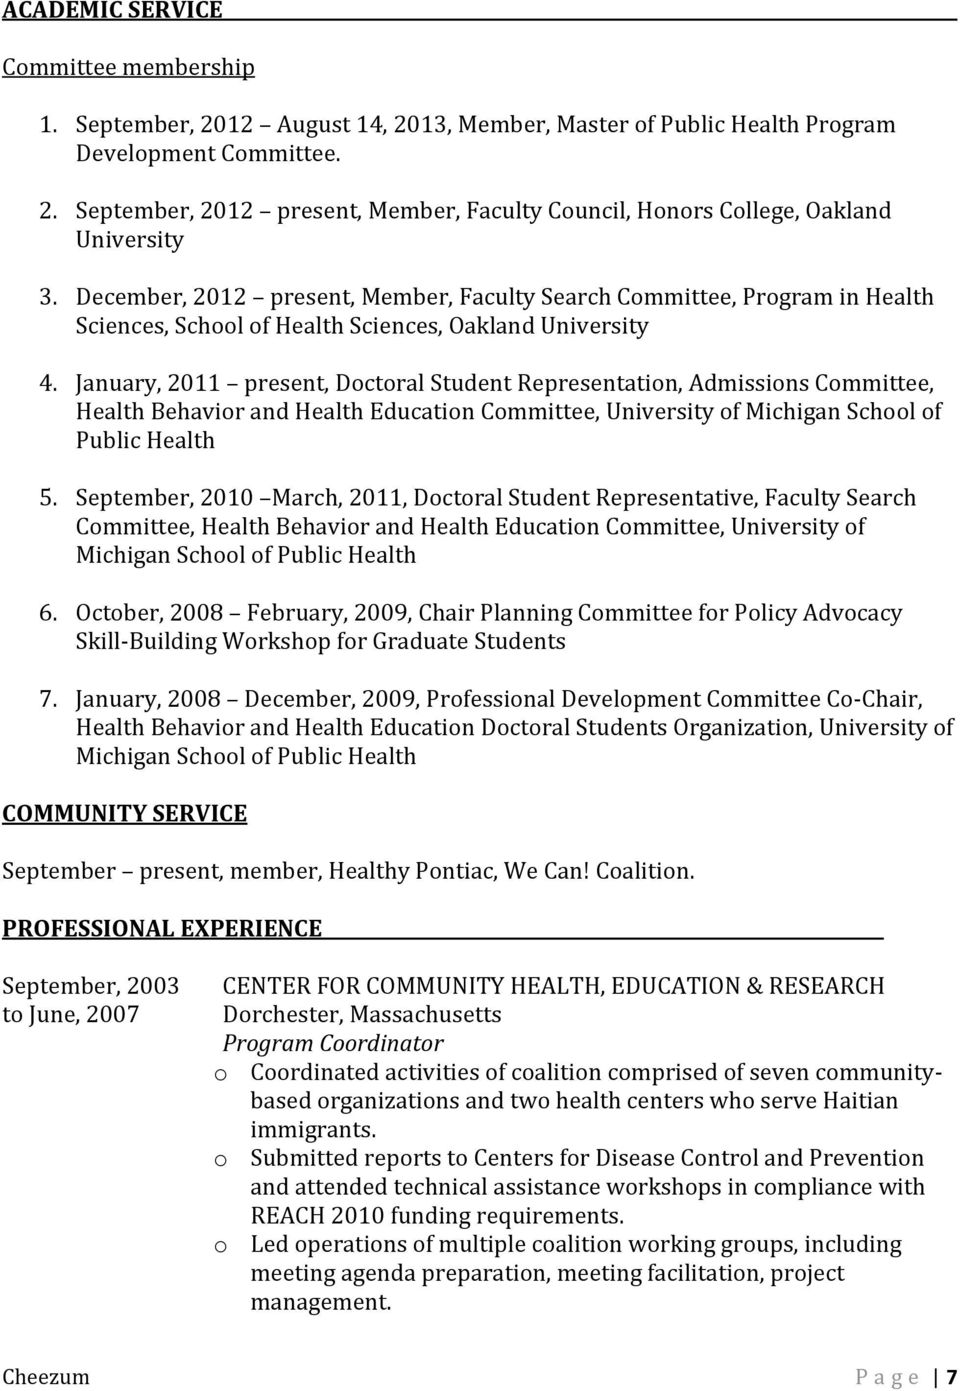 January, 2011 present, Doctoral Student Representation, Admissions Committee, Health Behavior and Health Education Committee, University of Michigan School of Public Health 5.